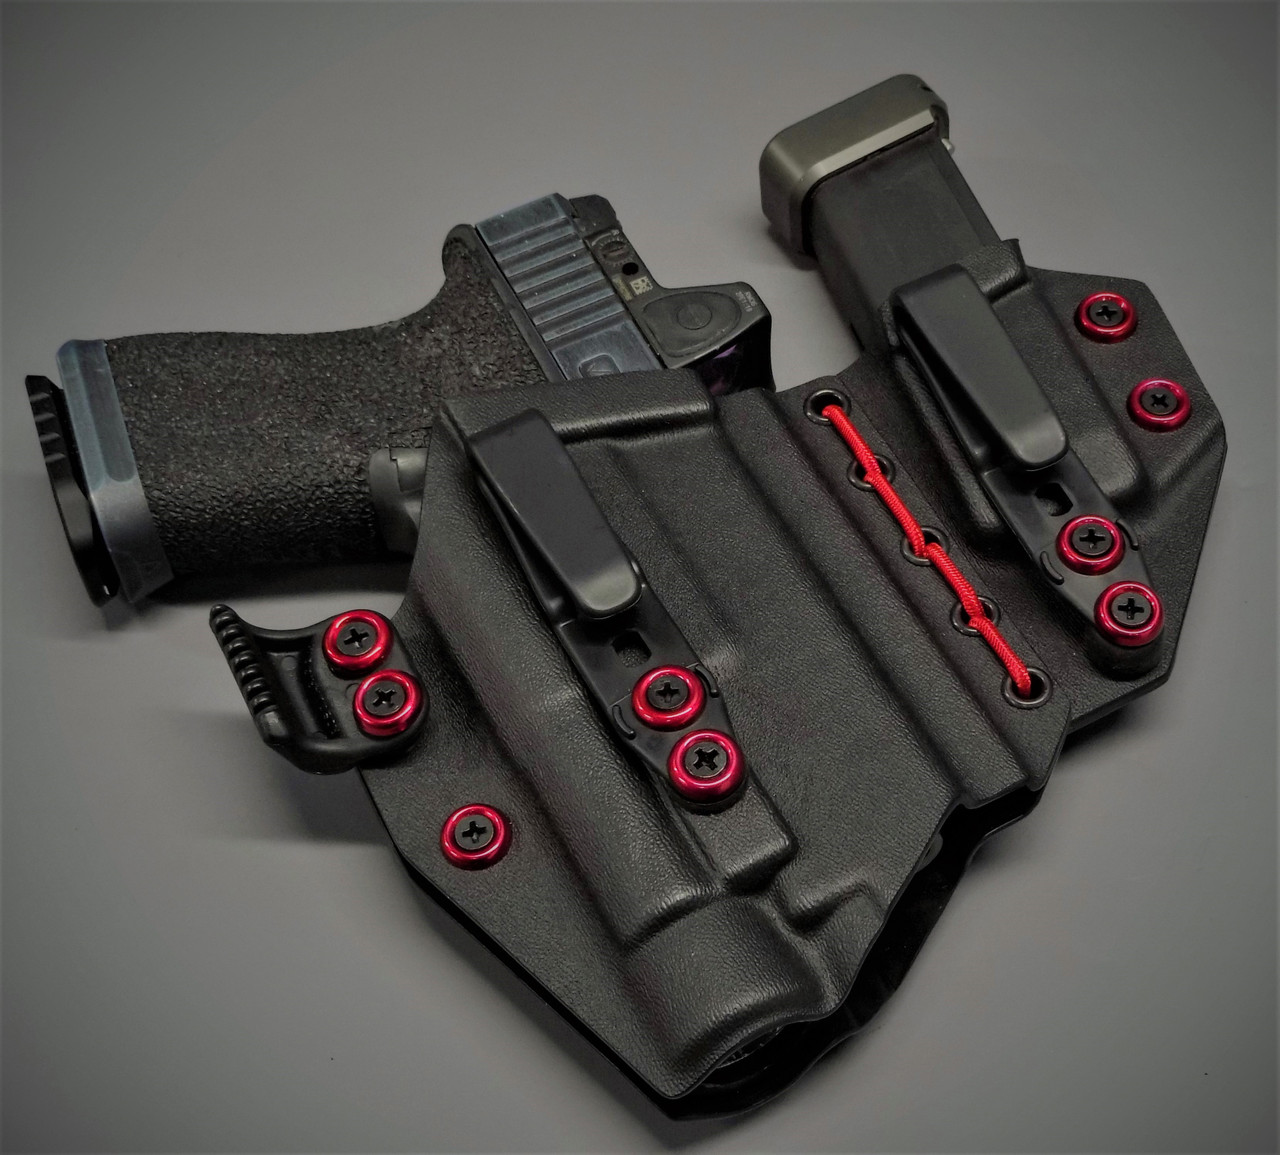 Glock 19 TLR1 Flexible Appendix Carry Rig